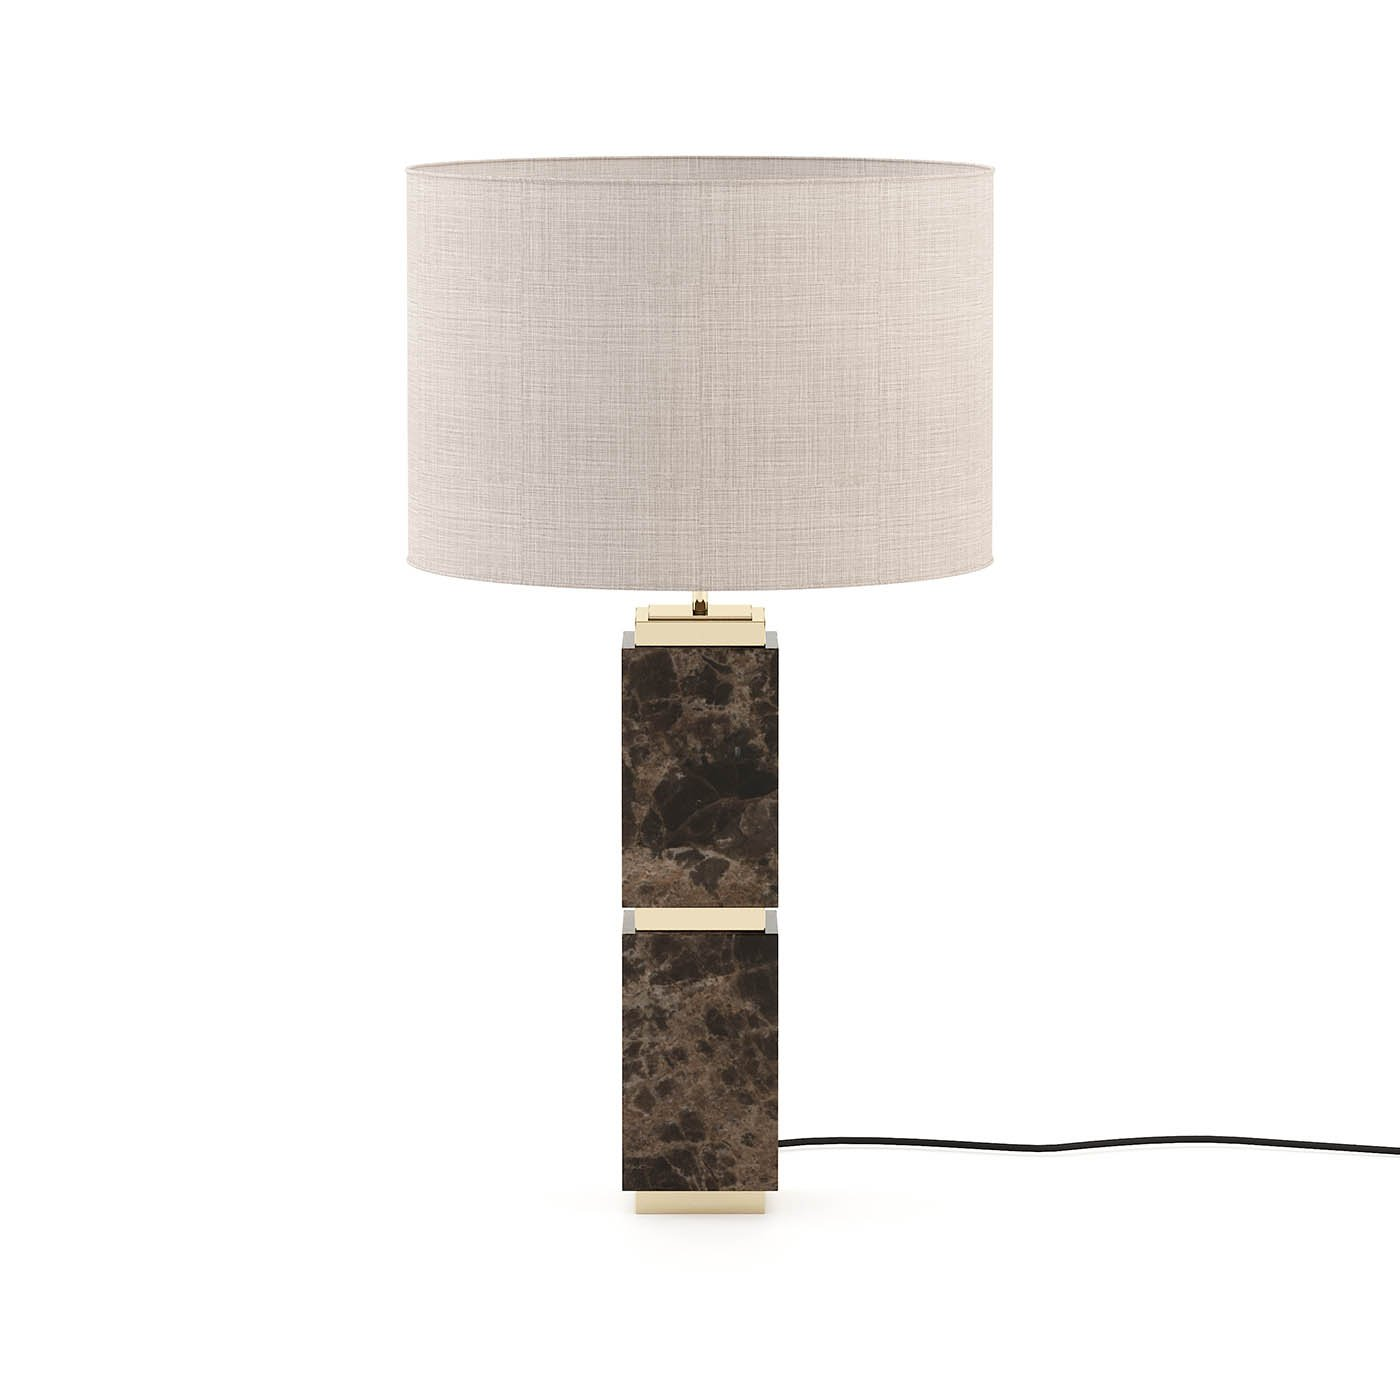 Quentin Table Lamp